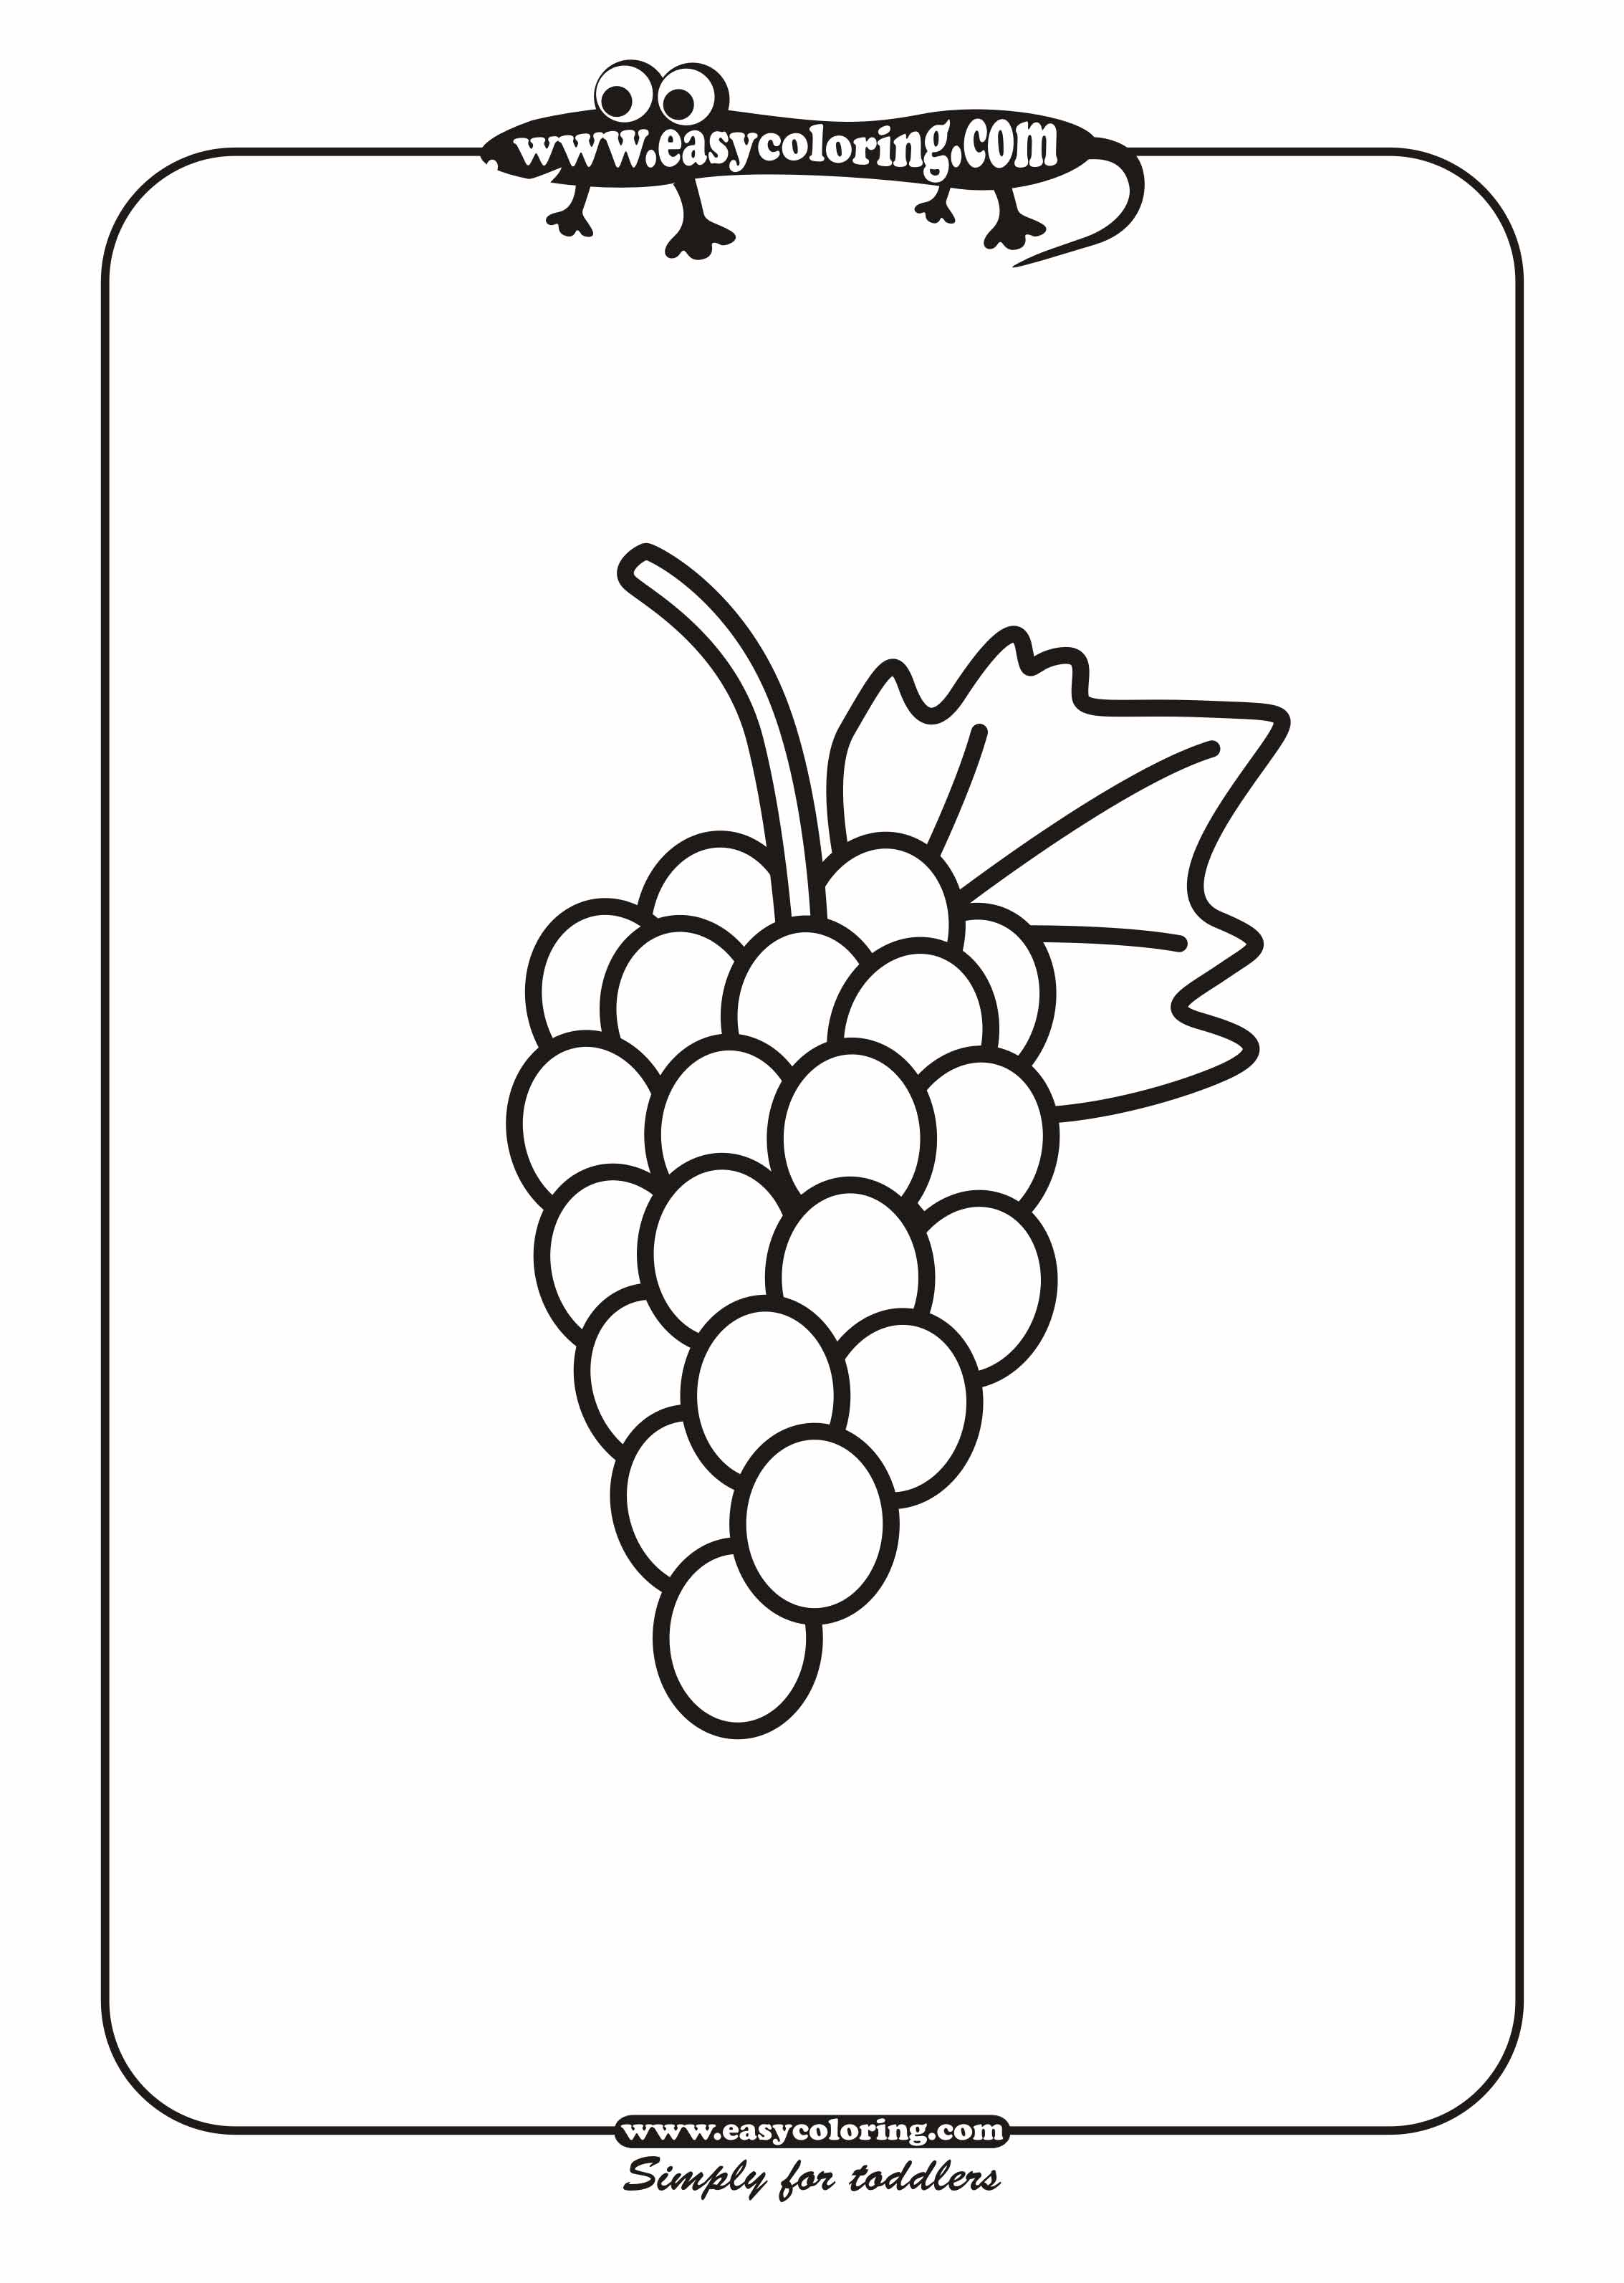 Free Coloring Pages Of Fruits Of Winter